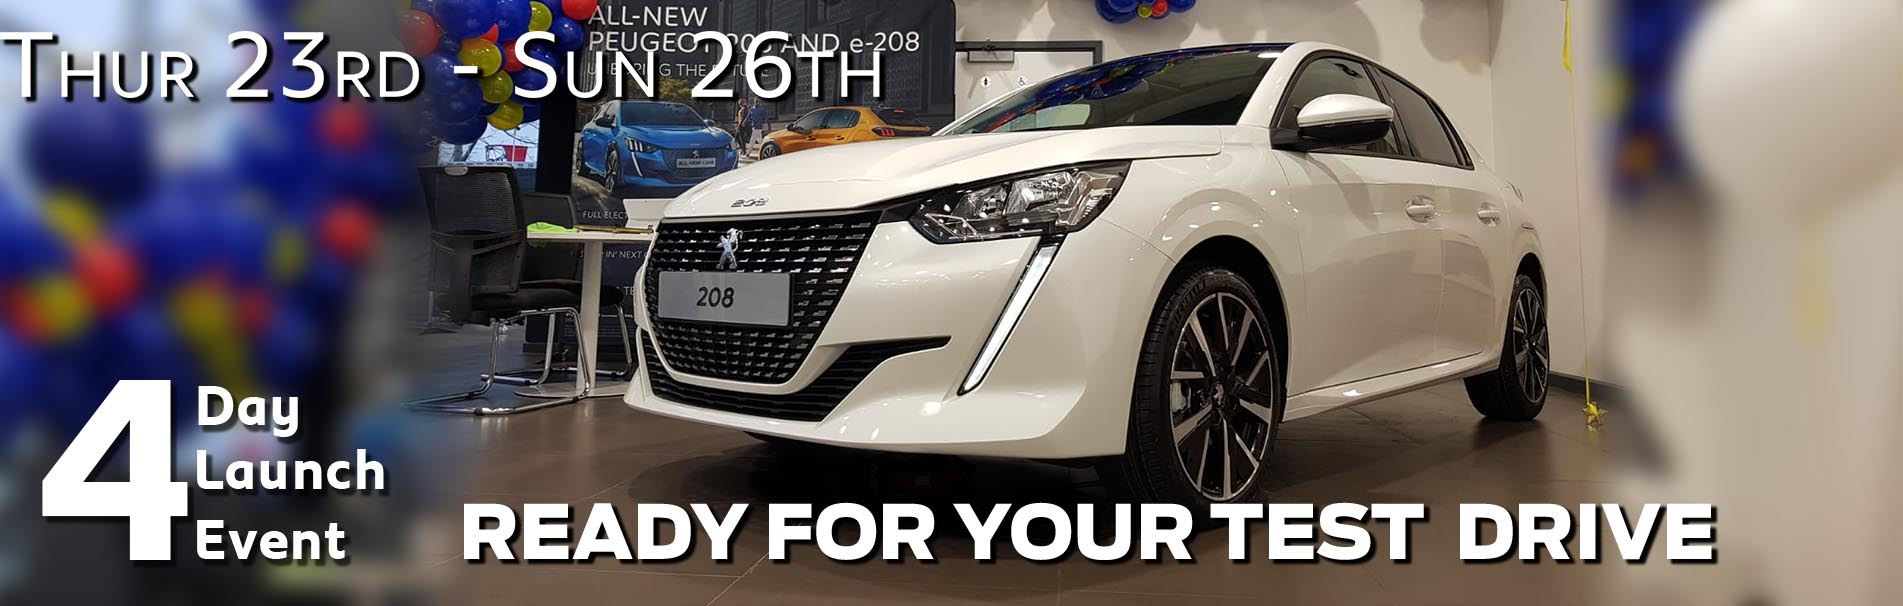 all-new-peugeot-208-launch-day-live-book-test-drive-sli